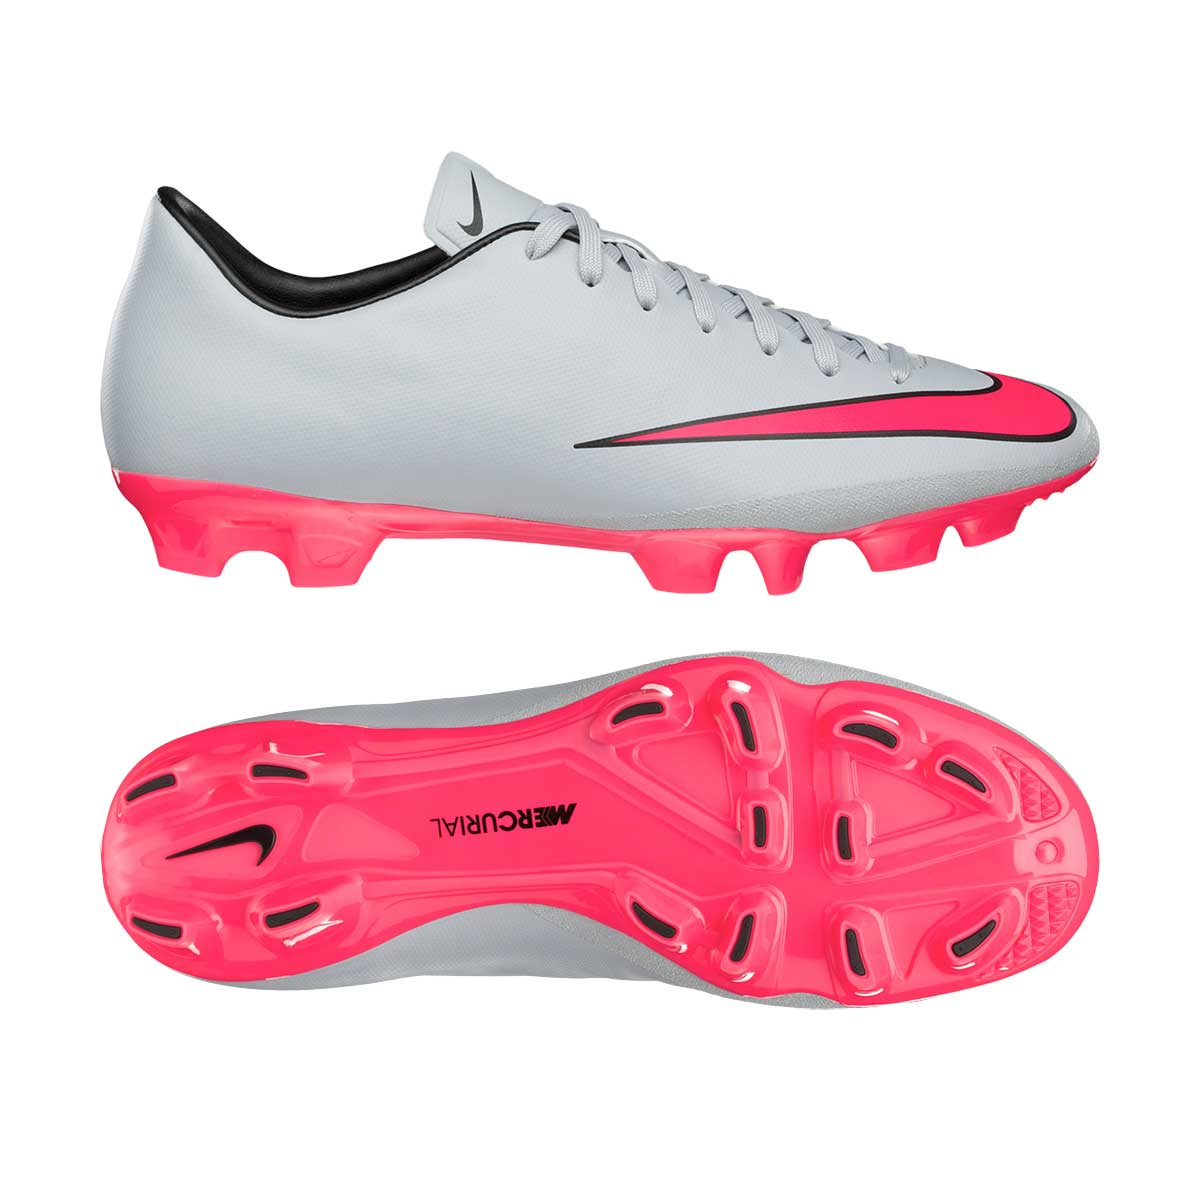 98ad41d7d853 Buy Nike Mercurial Victory V HG Football Shoes (Grey Pink Bk) Online